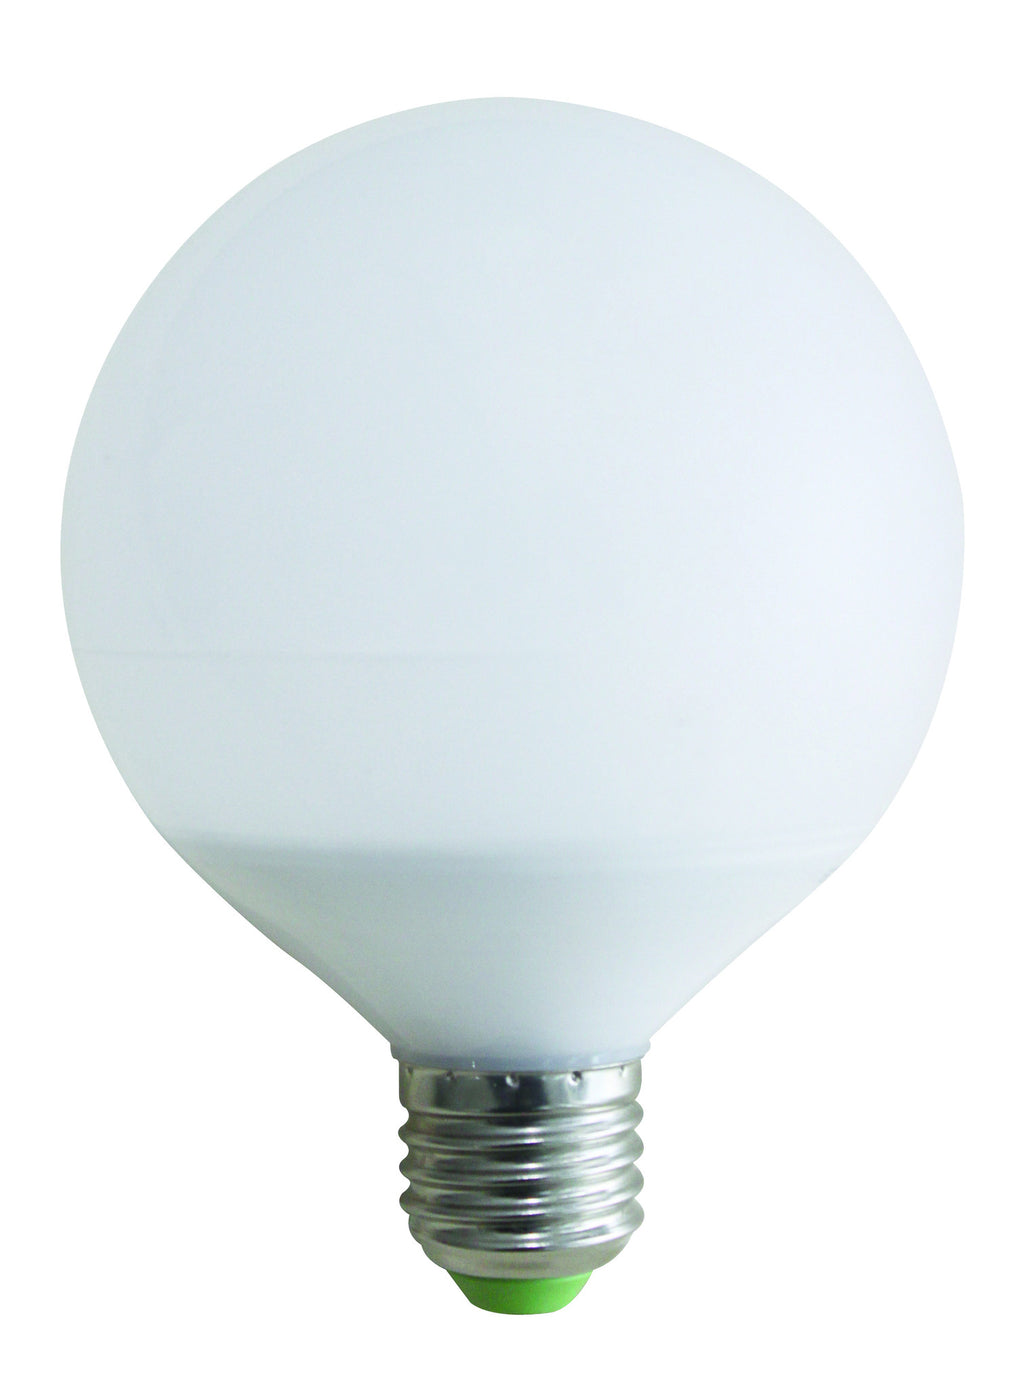 160102 - Globe G120 LED 330° 15W E27 2700K 1200Lm Frosted